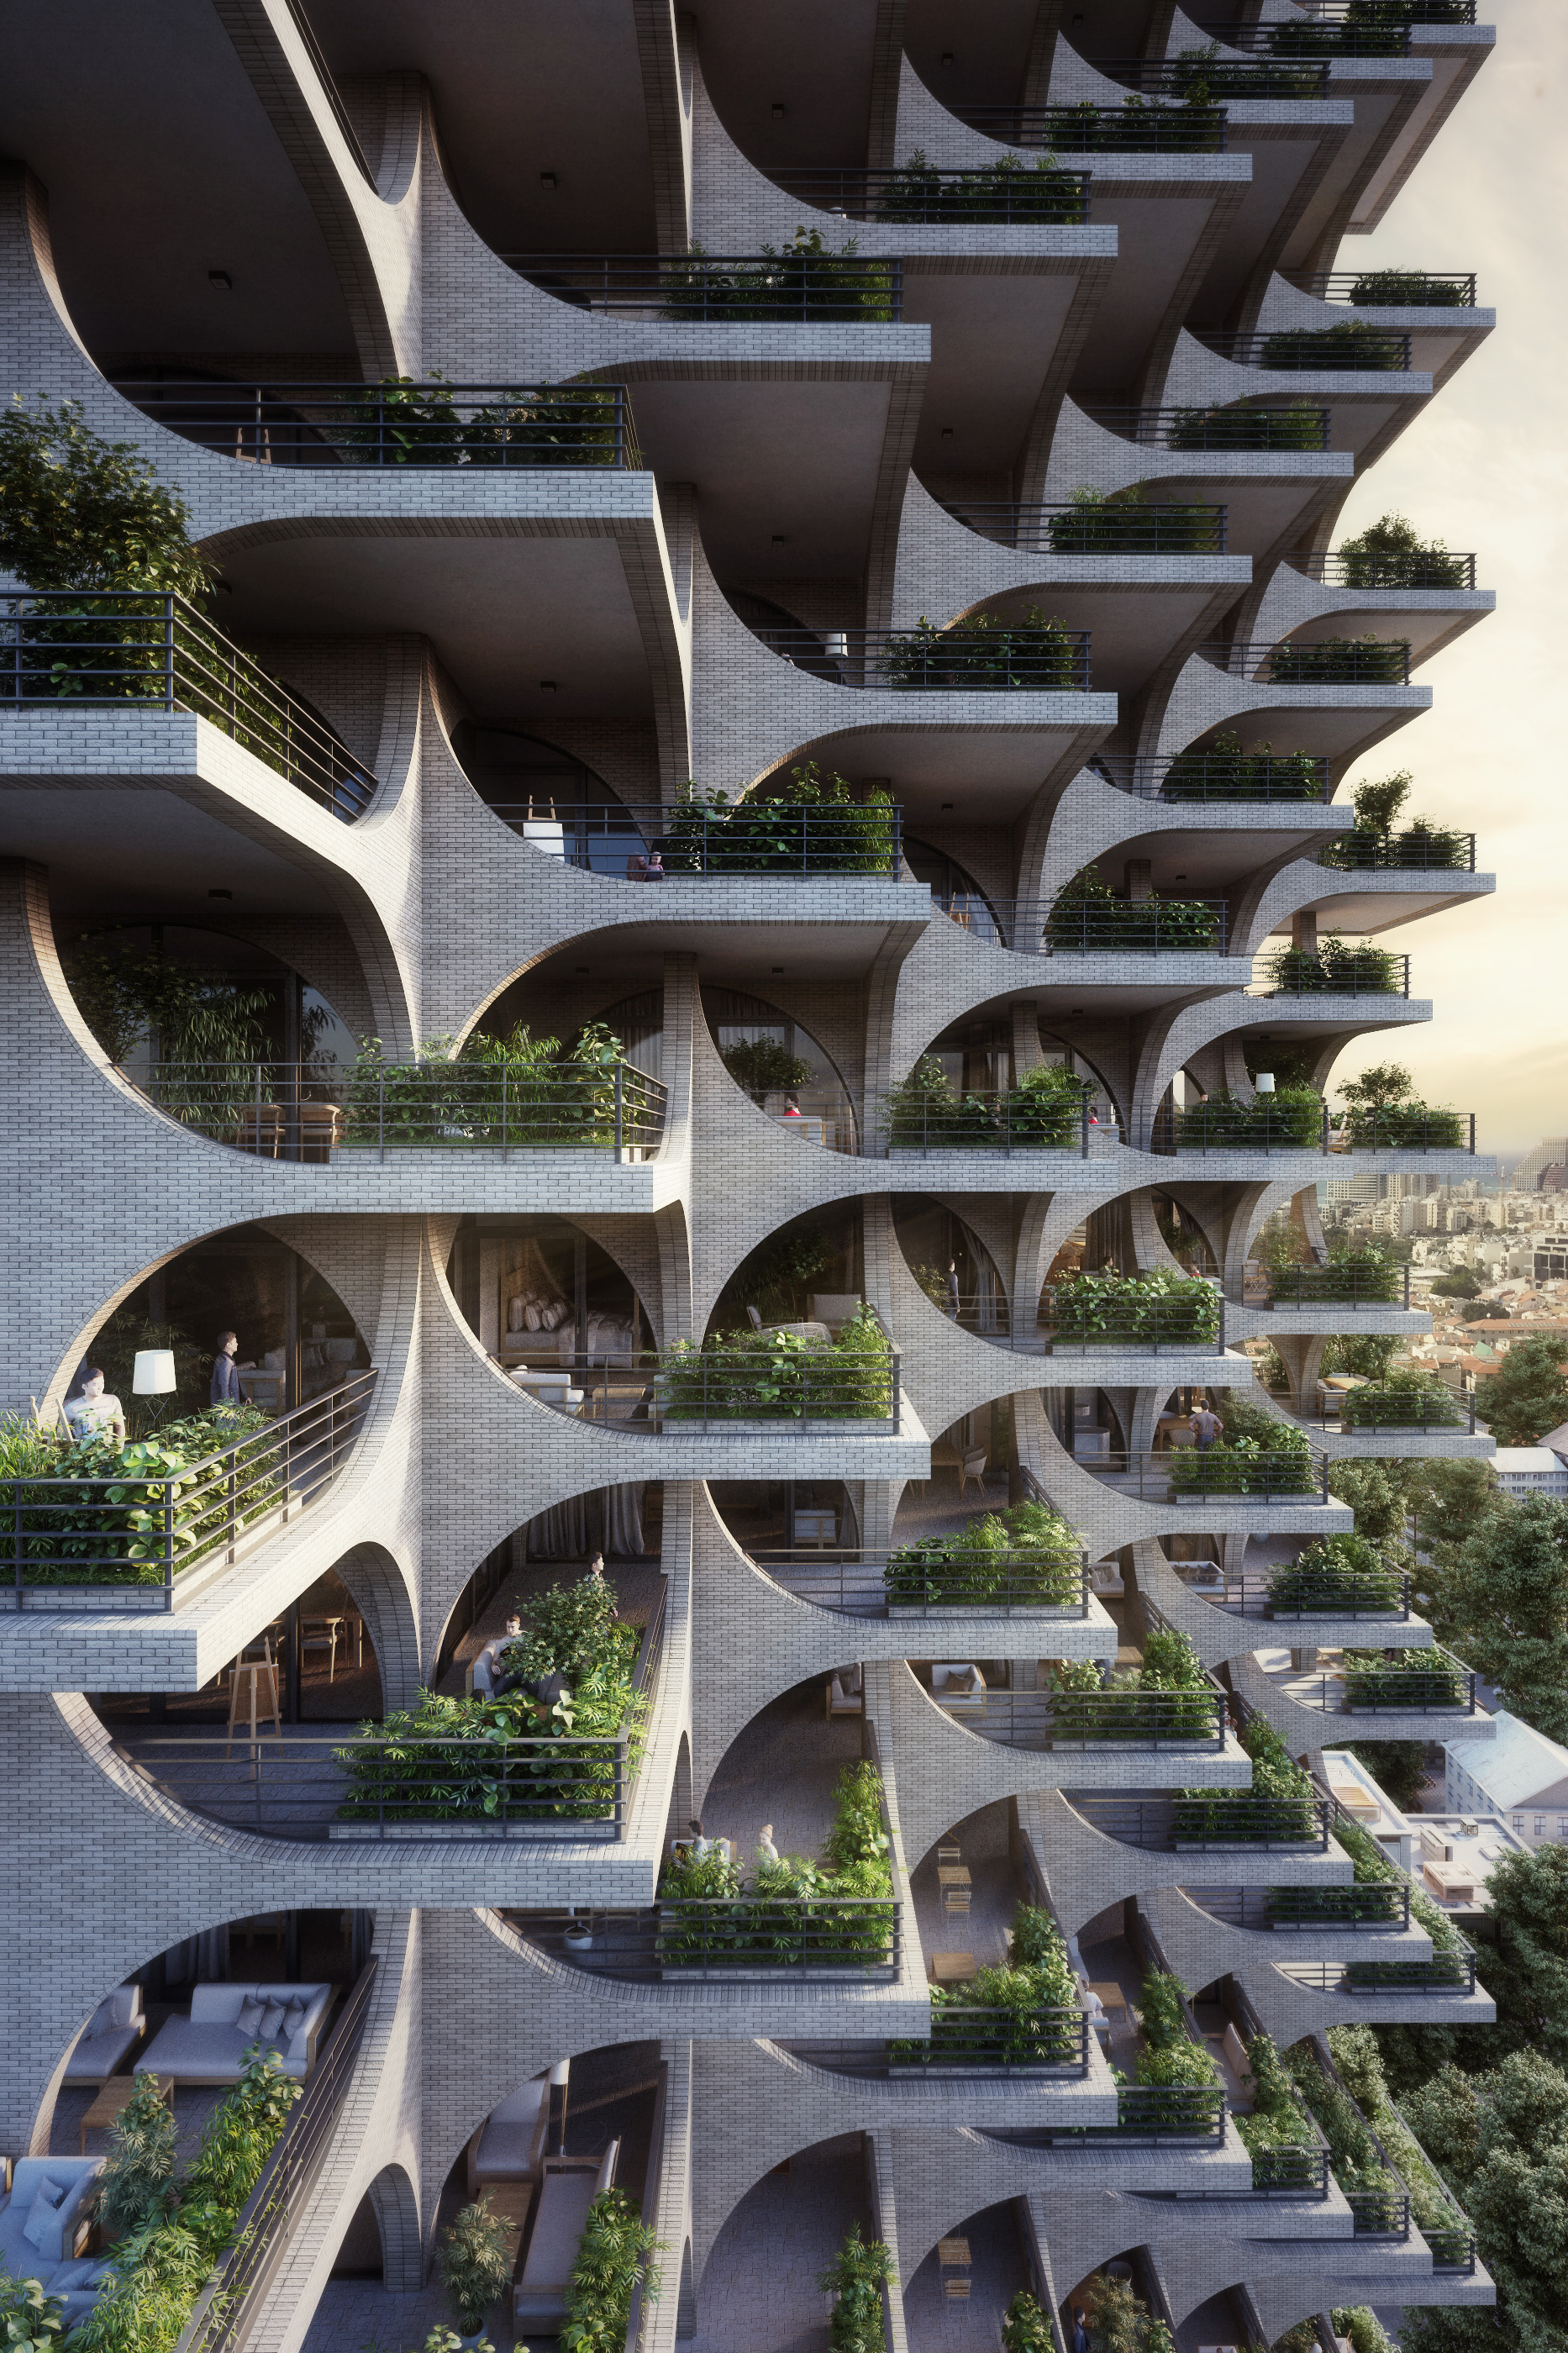 Gallery of Cascading Brick Arches Feature in Penda's Residential Tower in Tel Aviv - 6